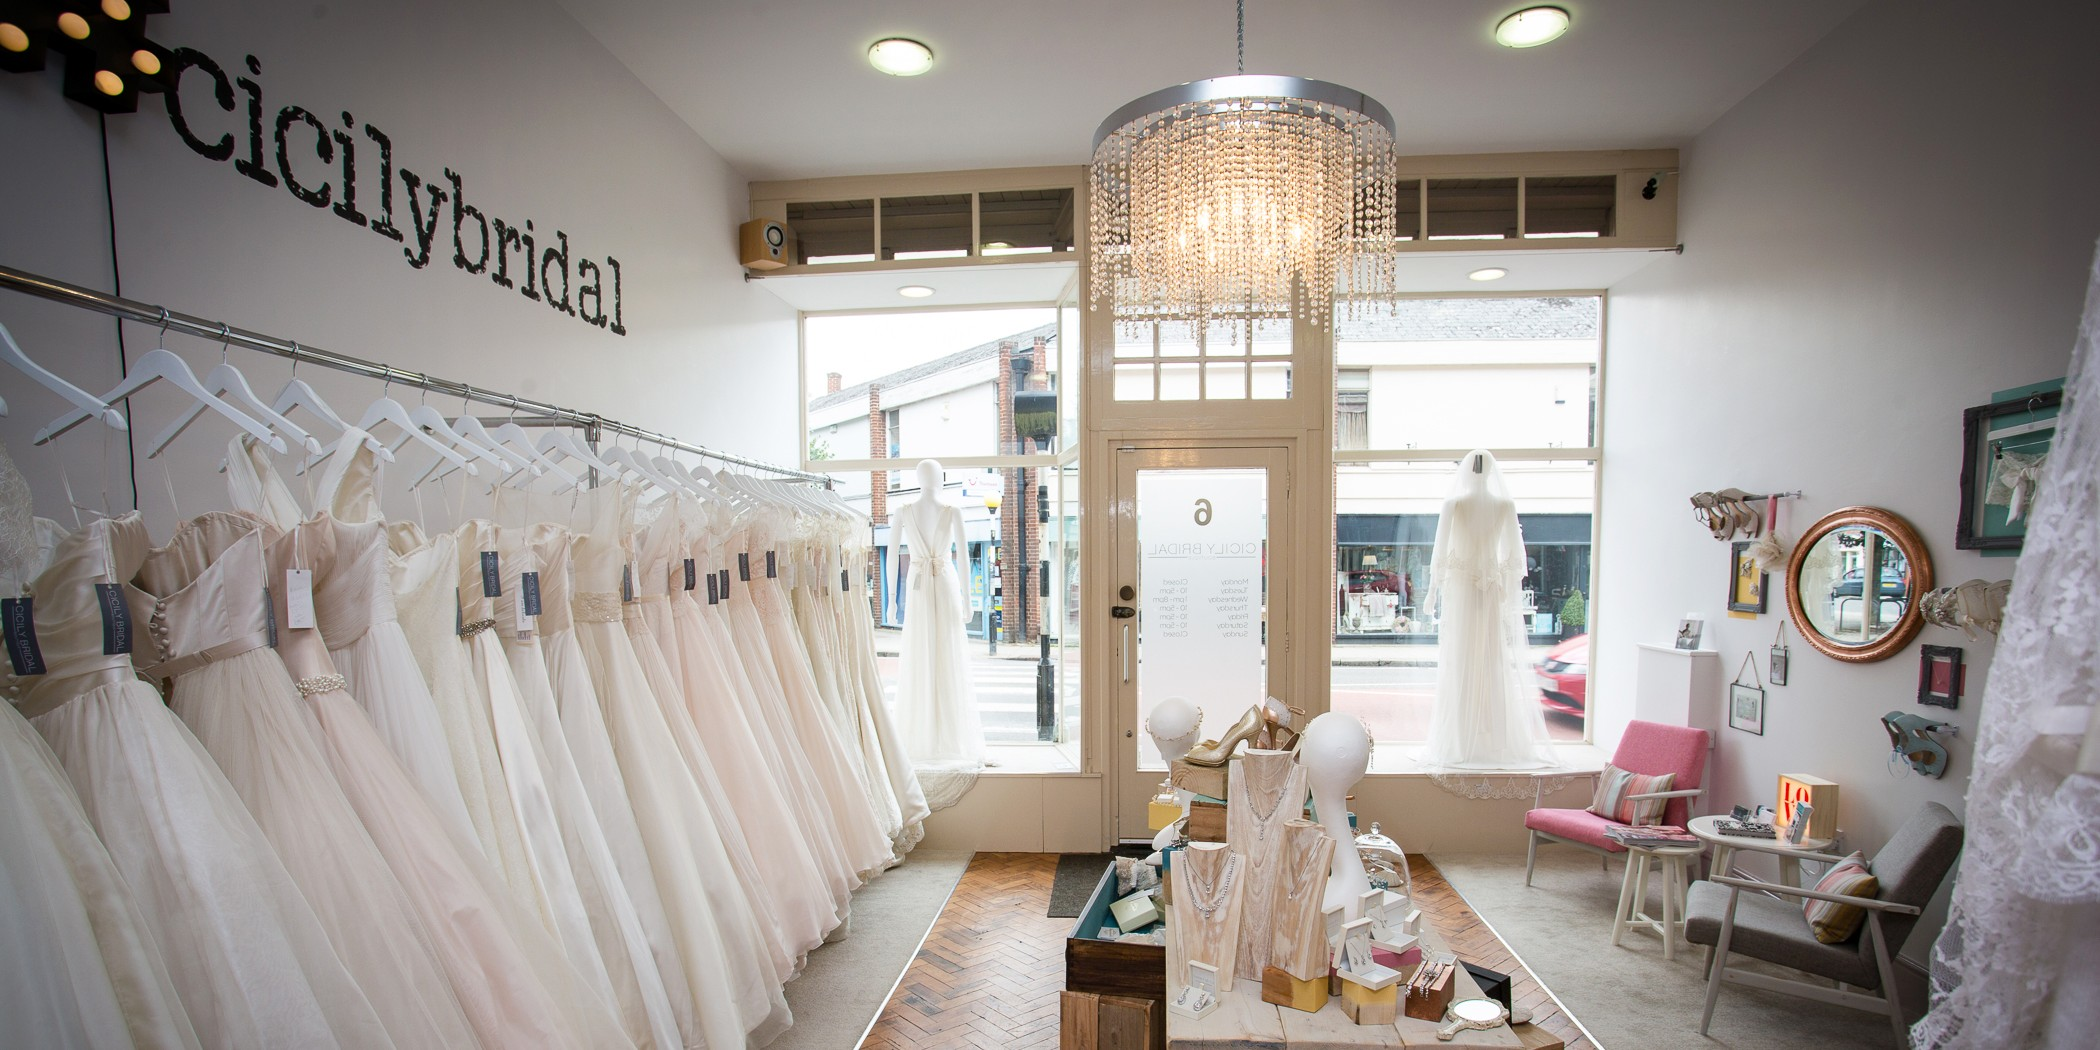 The exciting #restyle at Cicily Bridal - Main shop area